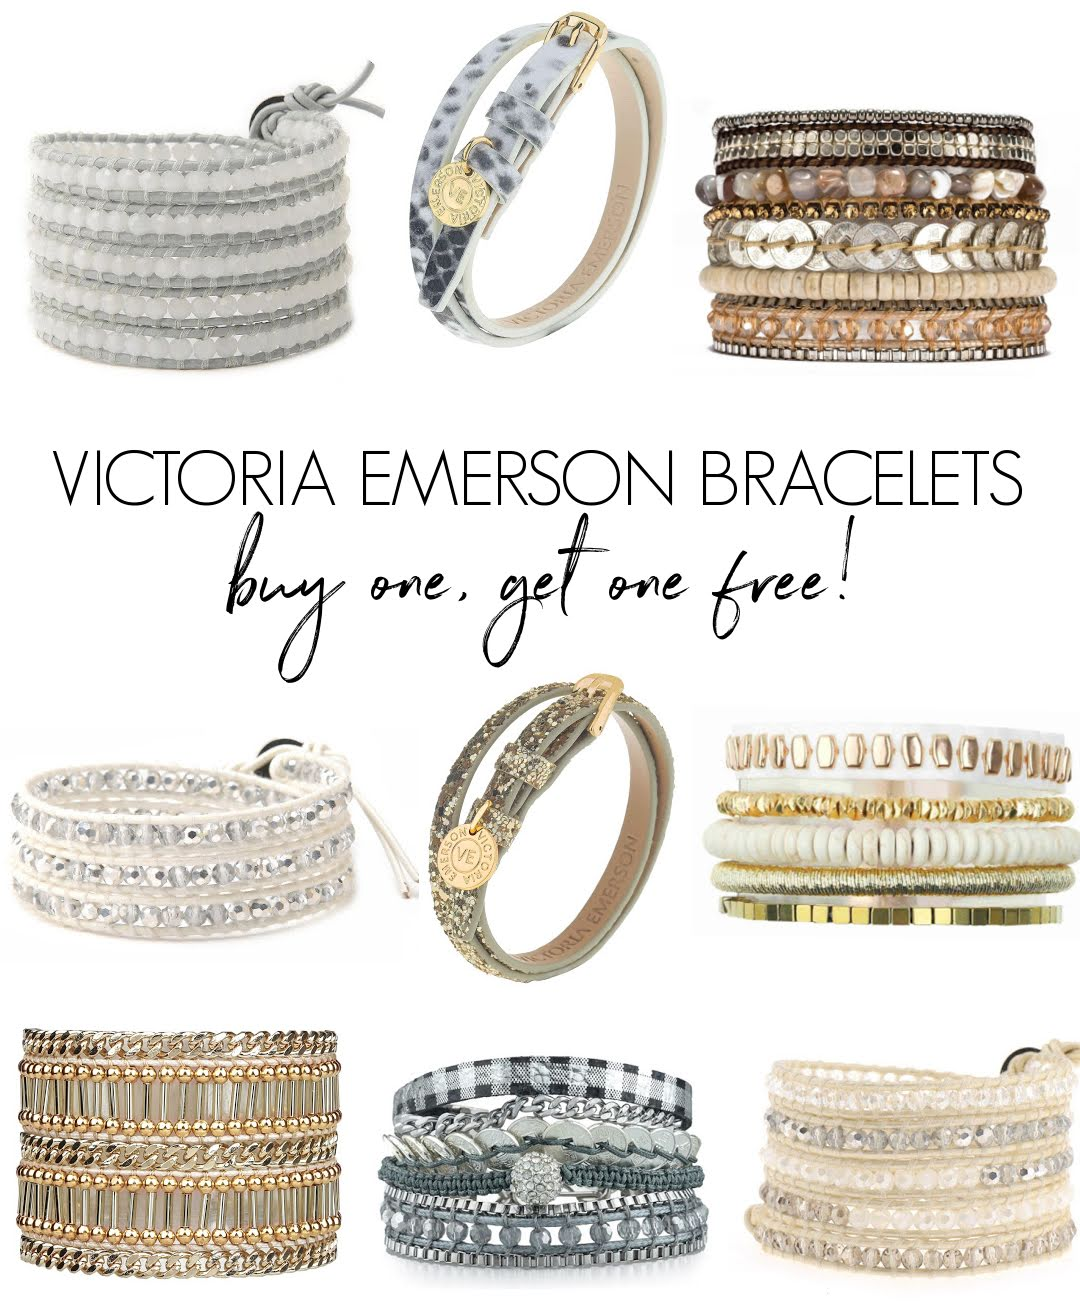 Love all of these gorgeous Victoria Emerson bracelets that are now buy one, get one free!